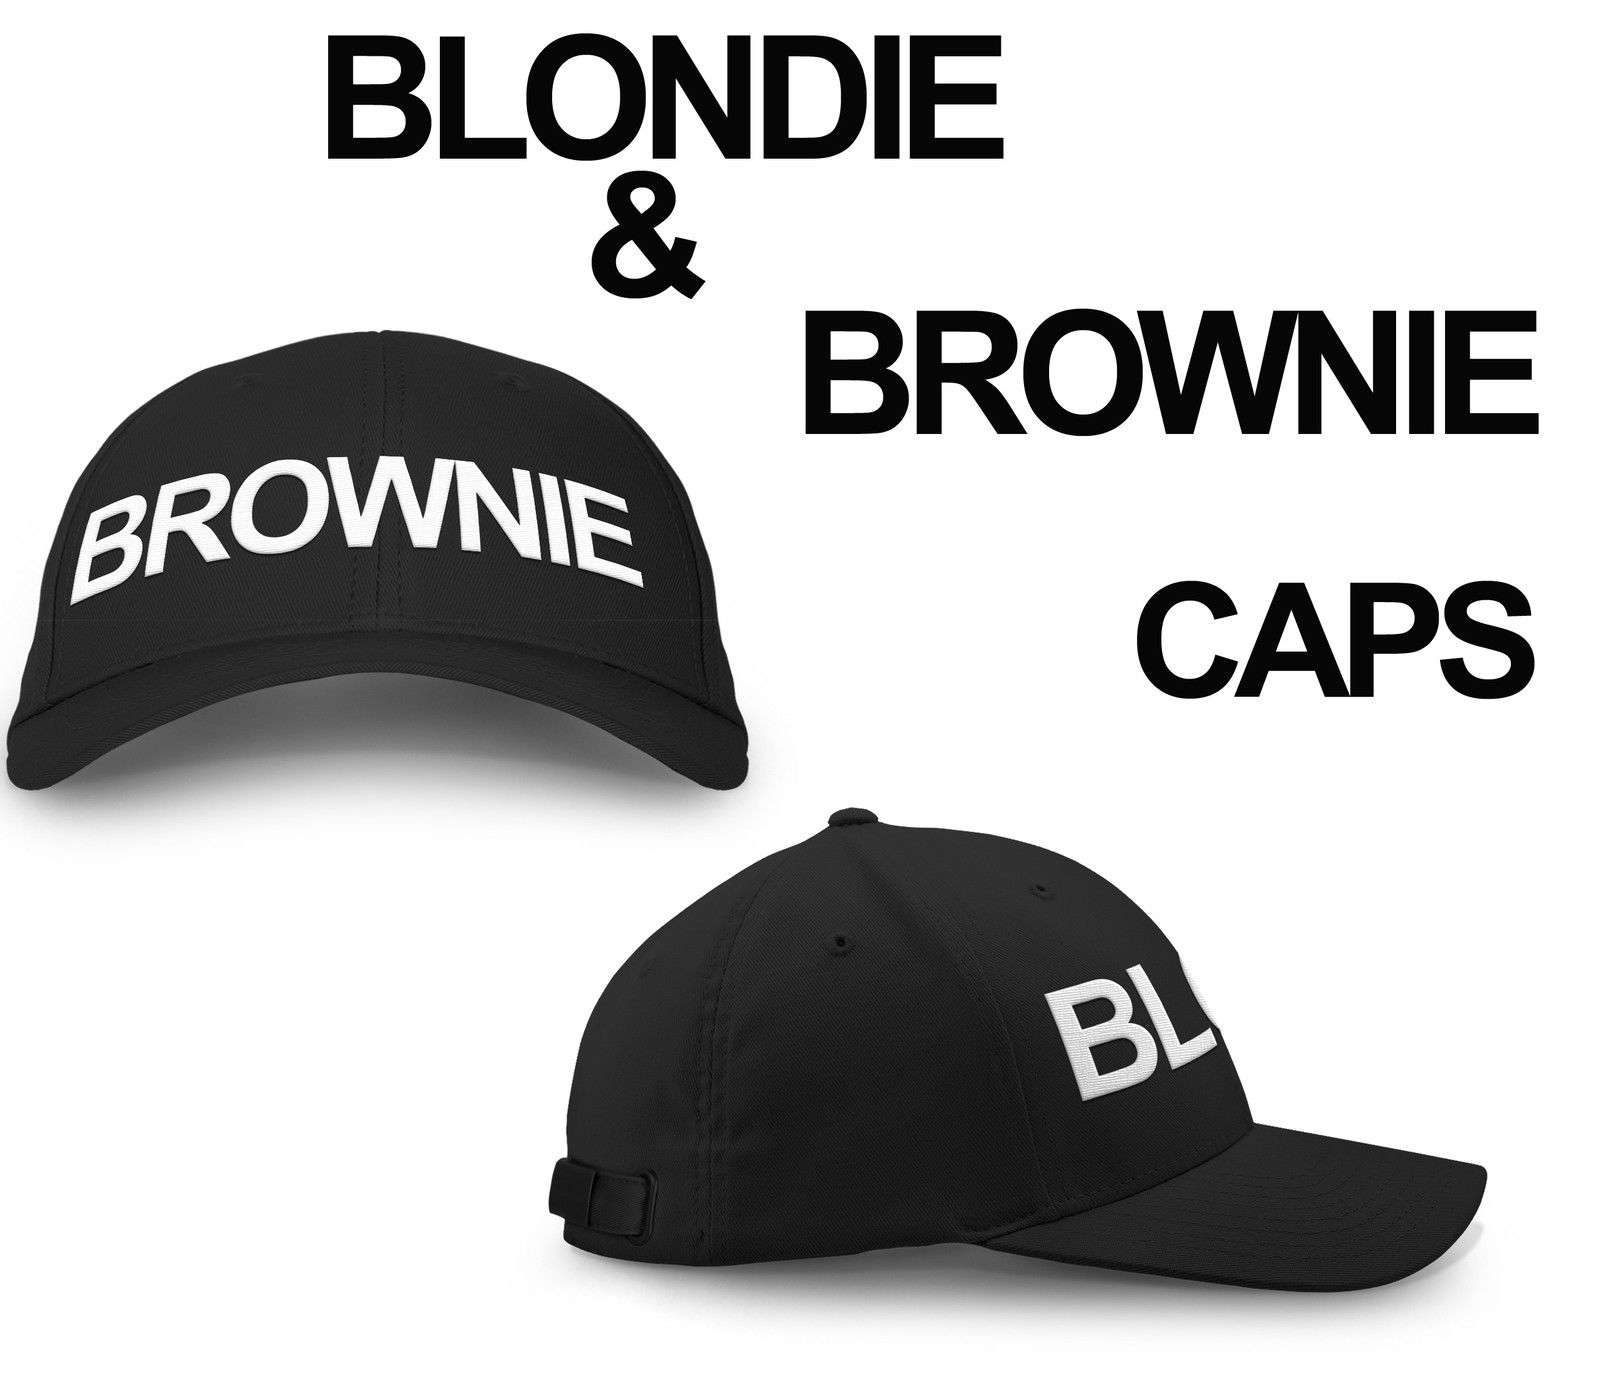 41b47ee4f BLONDIE BROWNIE Snapback Pair Fashion Printed Snapback Caps Hip-Hop Hats  Rapper